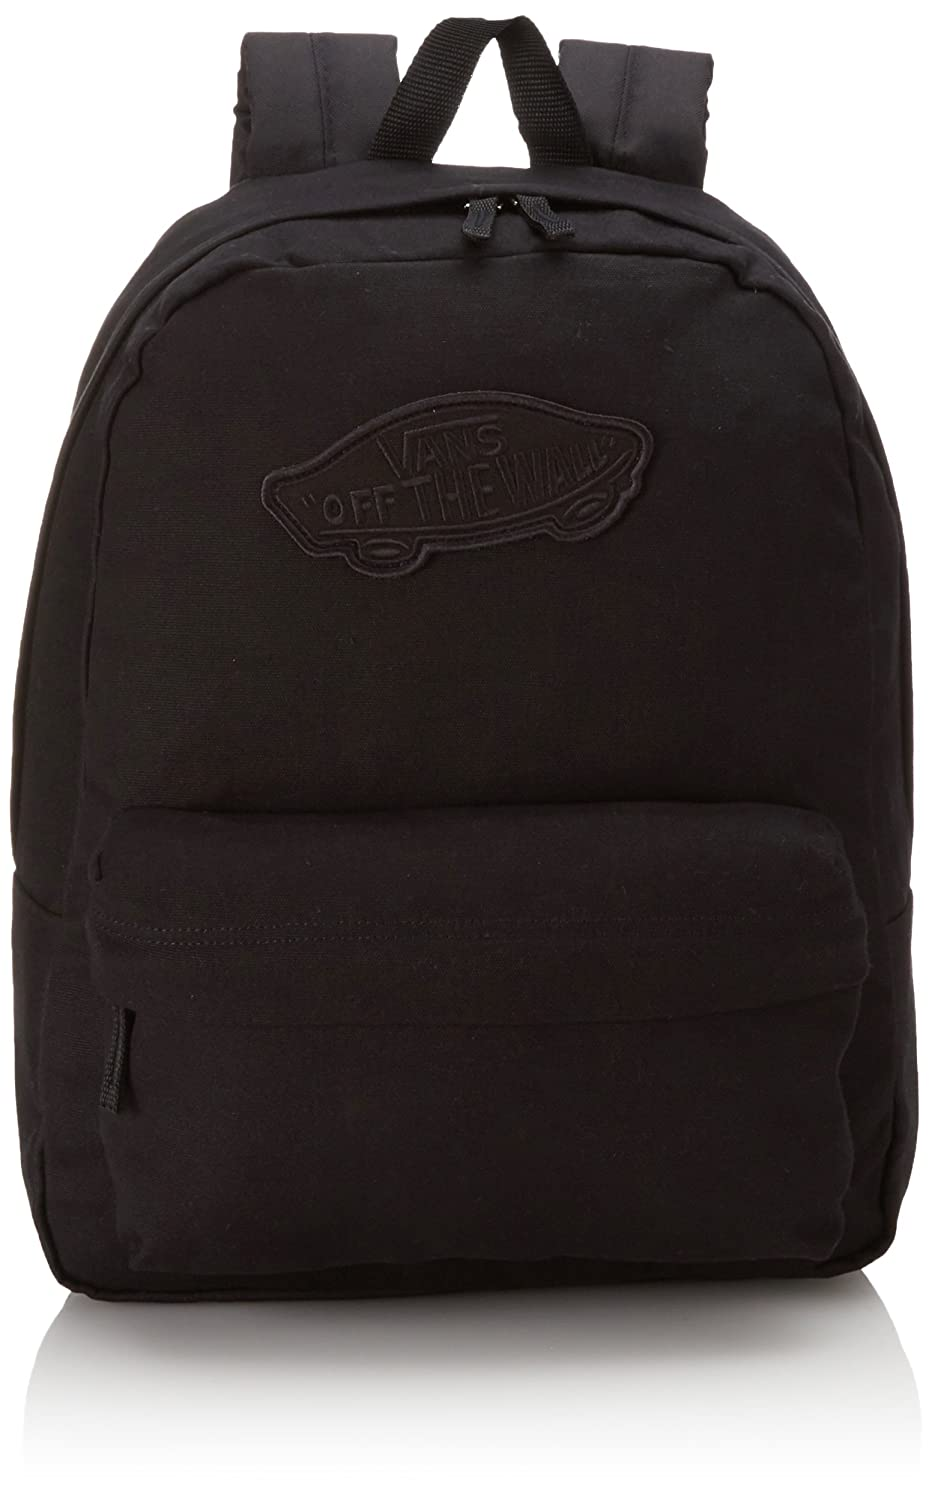 a4901a086f5f9 Amazon.com  Vans Backpacks - Vans Realm Backpack - Onyx  Sports   Outdoors